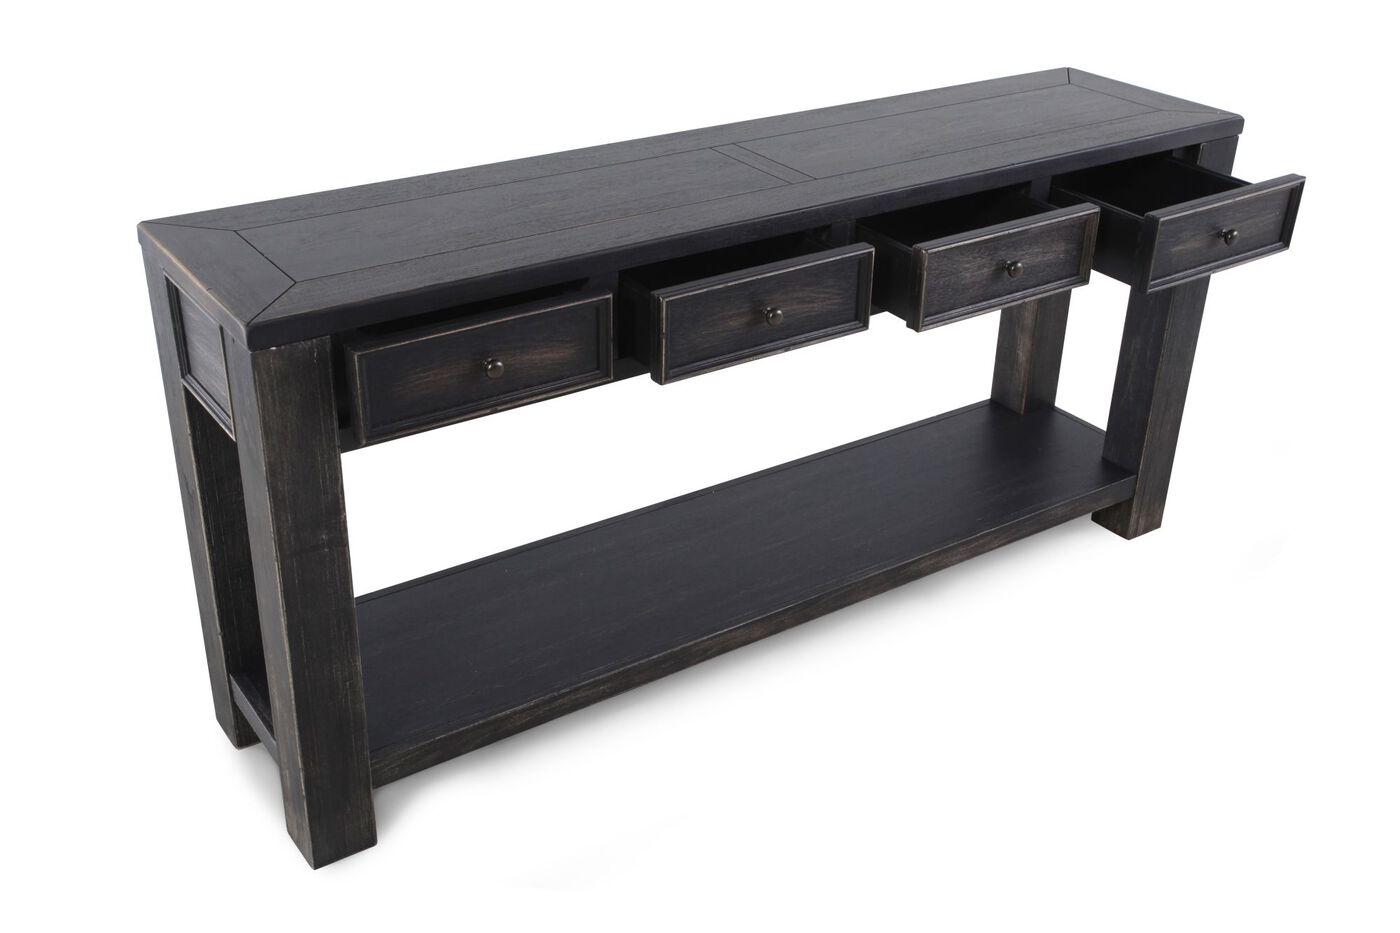 Ashley gavelston sofa table mathis brothers furniture ashley geotapseo Gallery